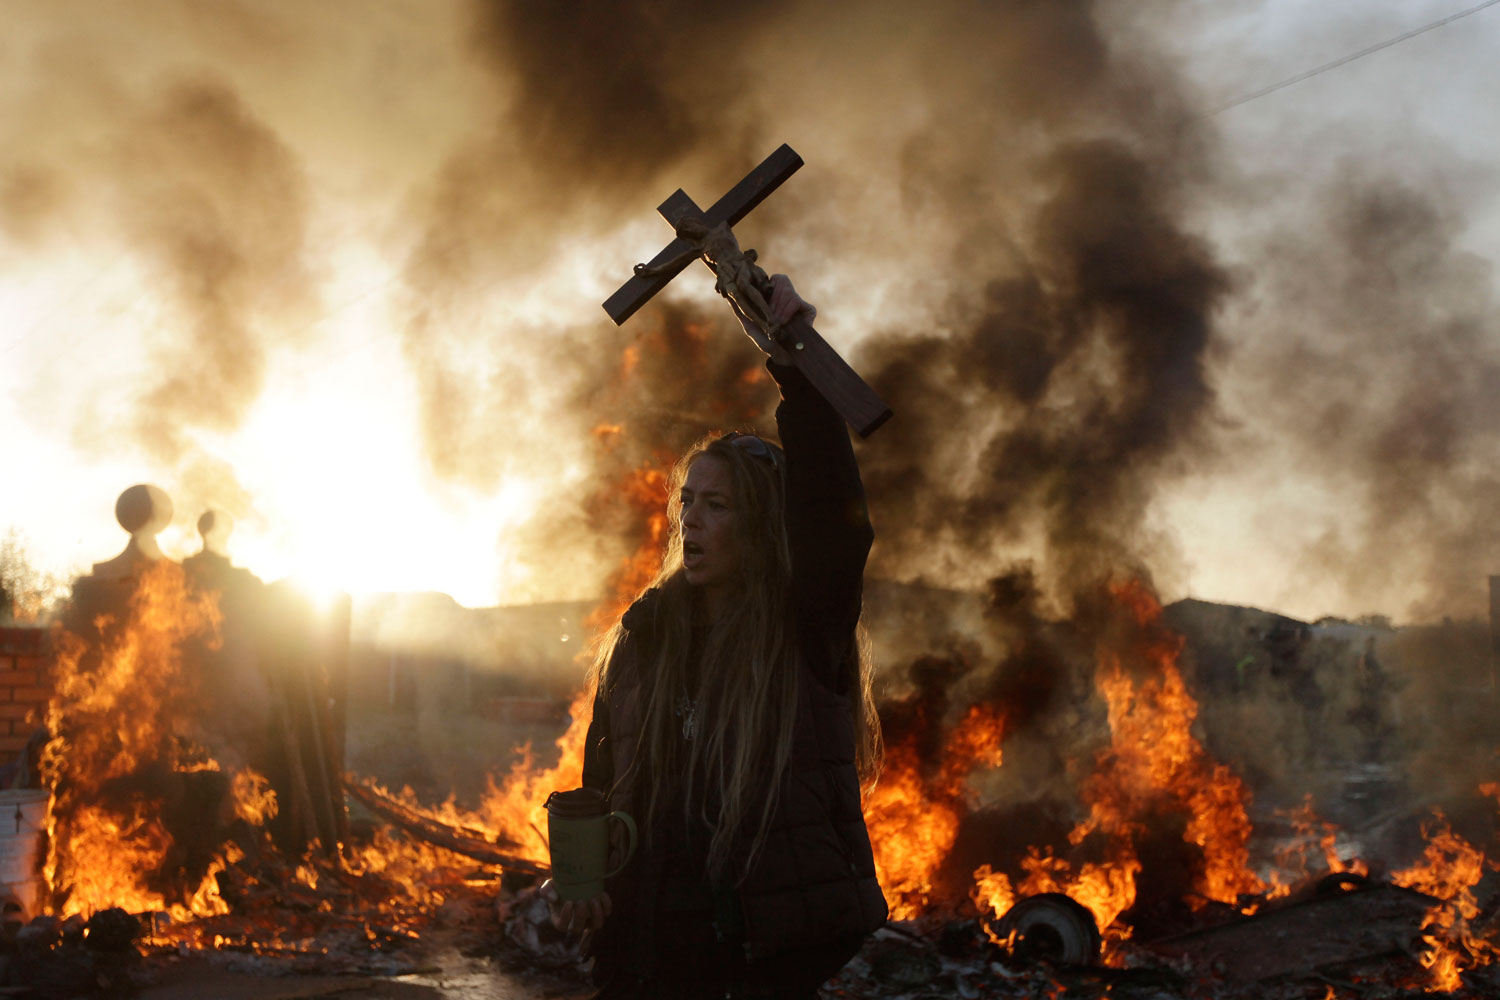 October 19, 2011. An Irish traveler resident holds up a cross for the media, in front of a burning barricade during evictions at the Dale Farm travelers site, near Basildon England, 30 miles east of London. Police in riot gear used sledgehammers to clear the way for the eviction of a community of Irish travelers from a site where they have lived illegally for a decade.